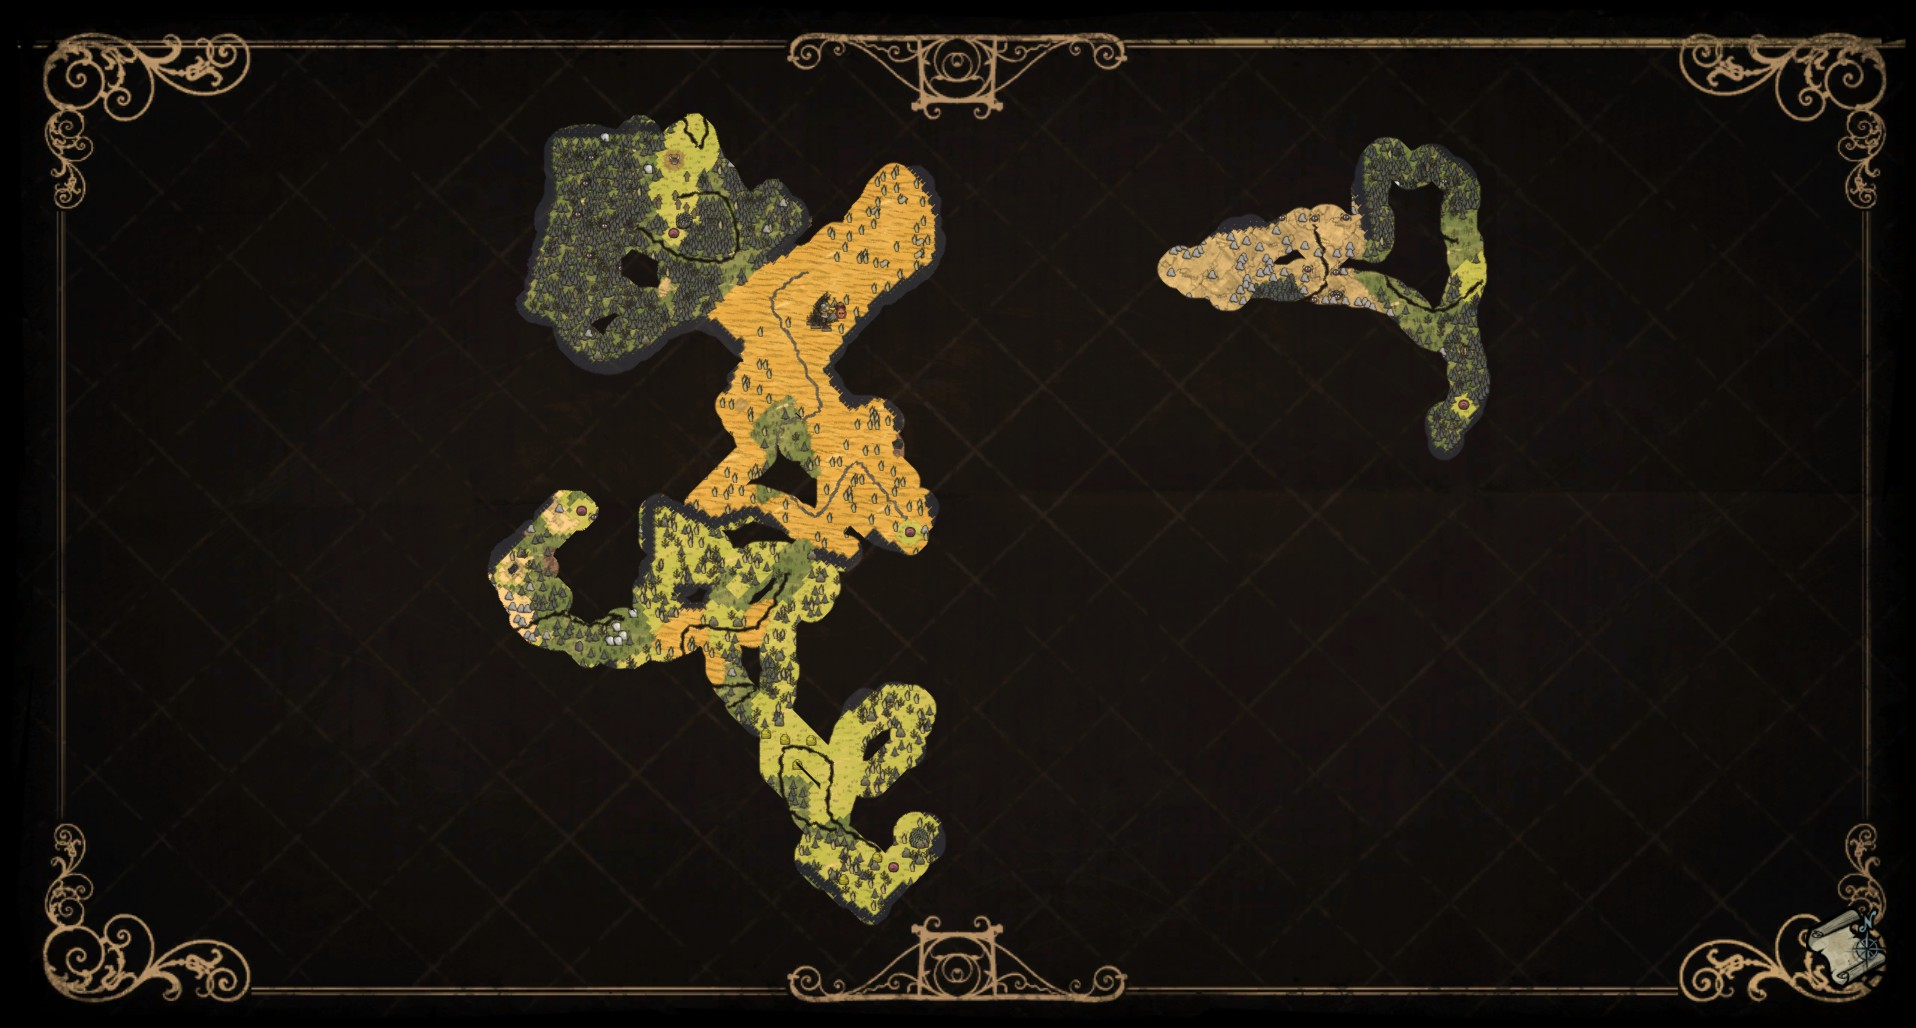 Explore your map in Don't Starve to survive